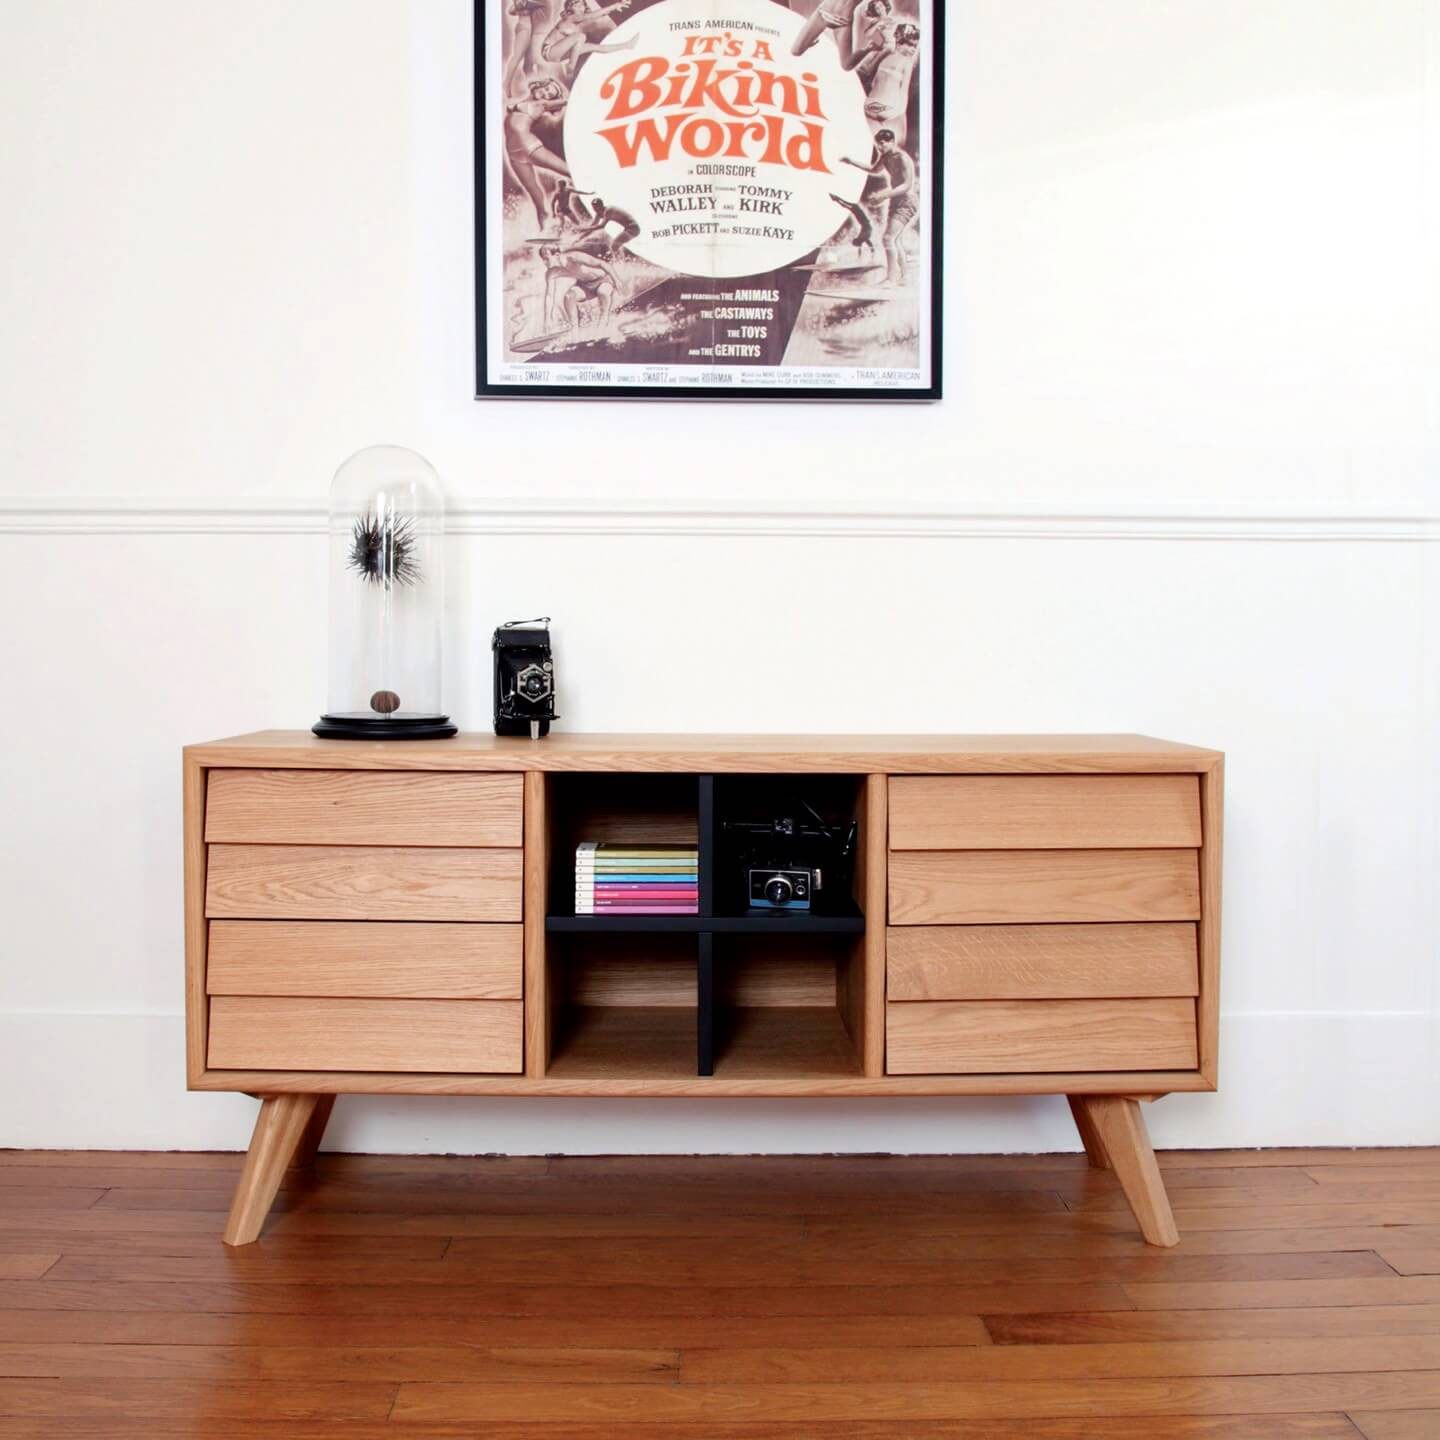 furniture-remix-sideboard-the-hansen-family-1